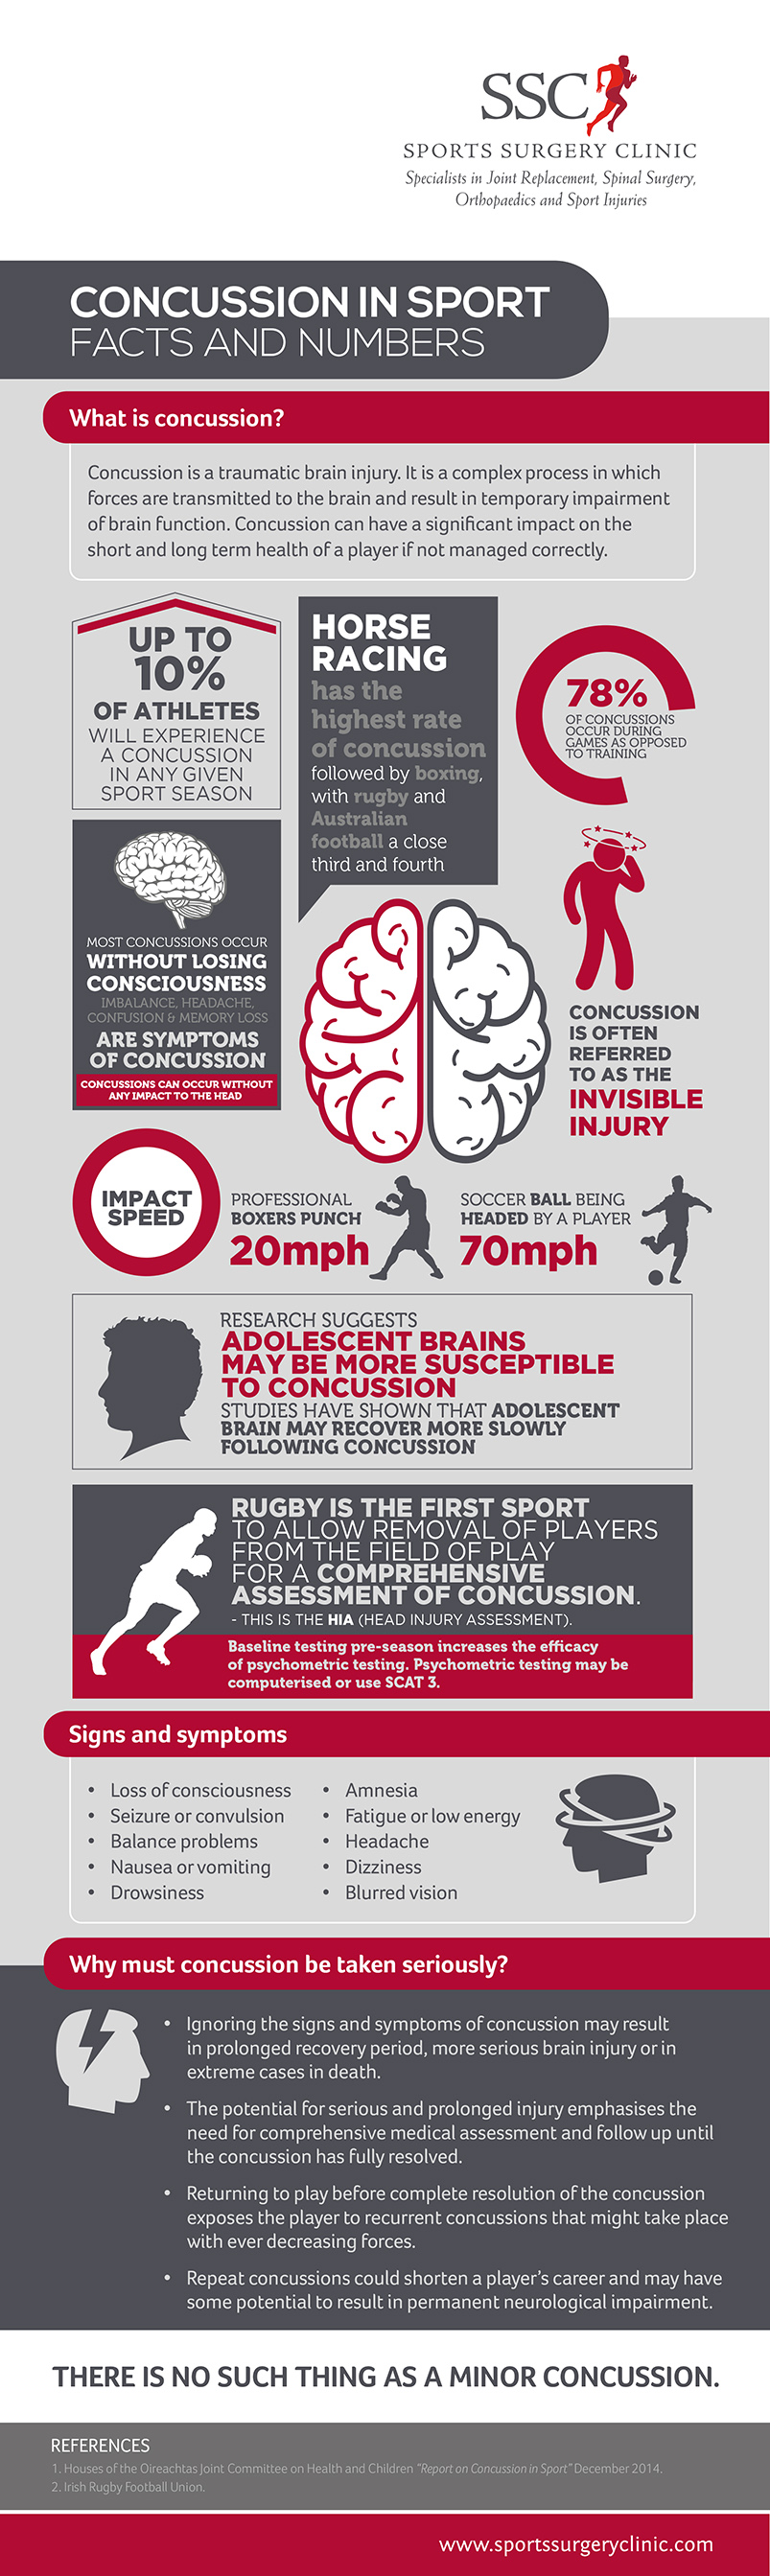 Infographic on Concussion